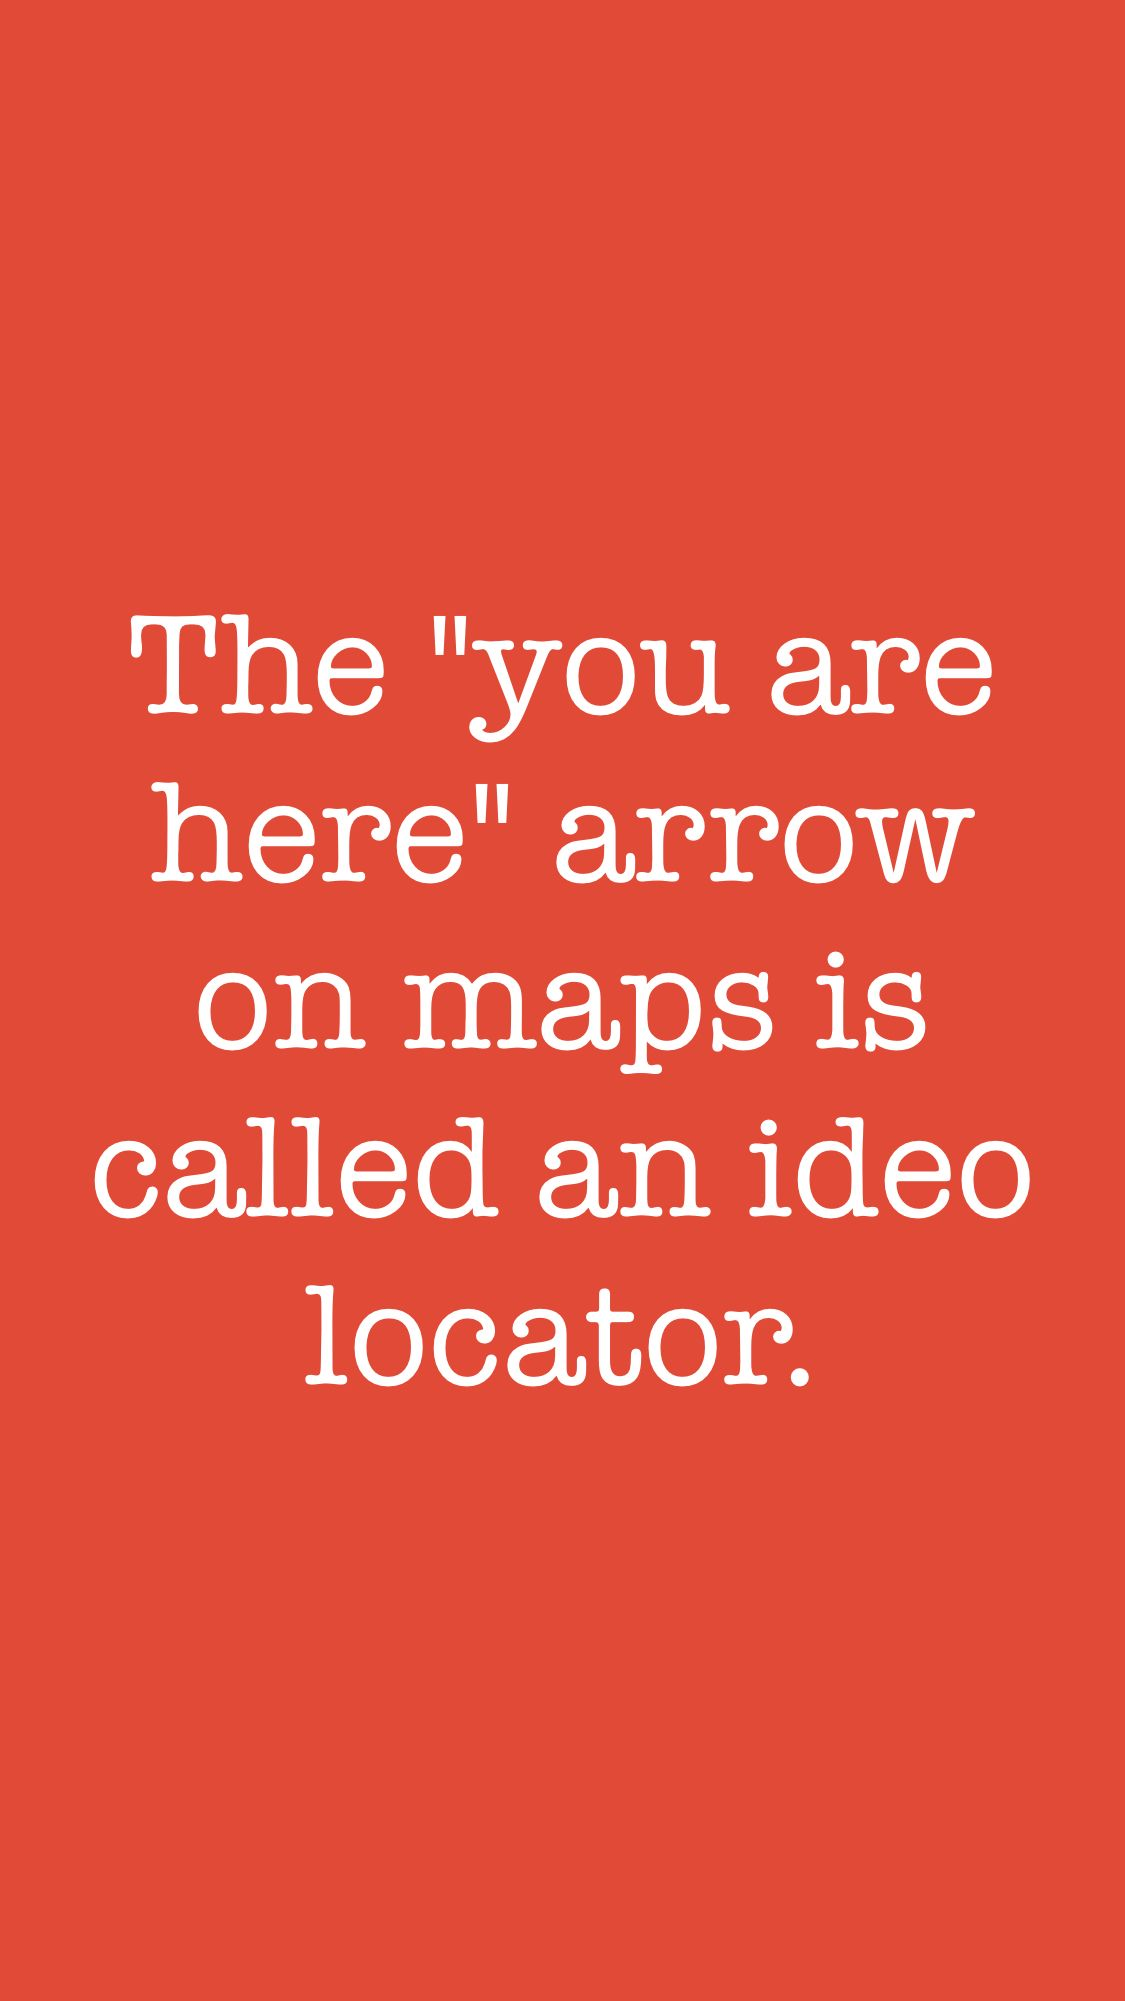 """The """"you are here"""" arrow on maps is called an ideo locator"""